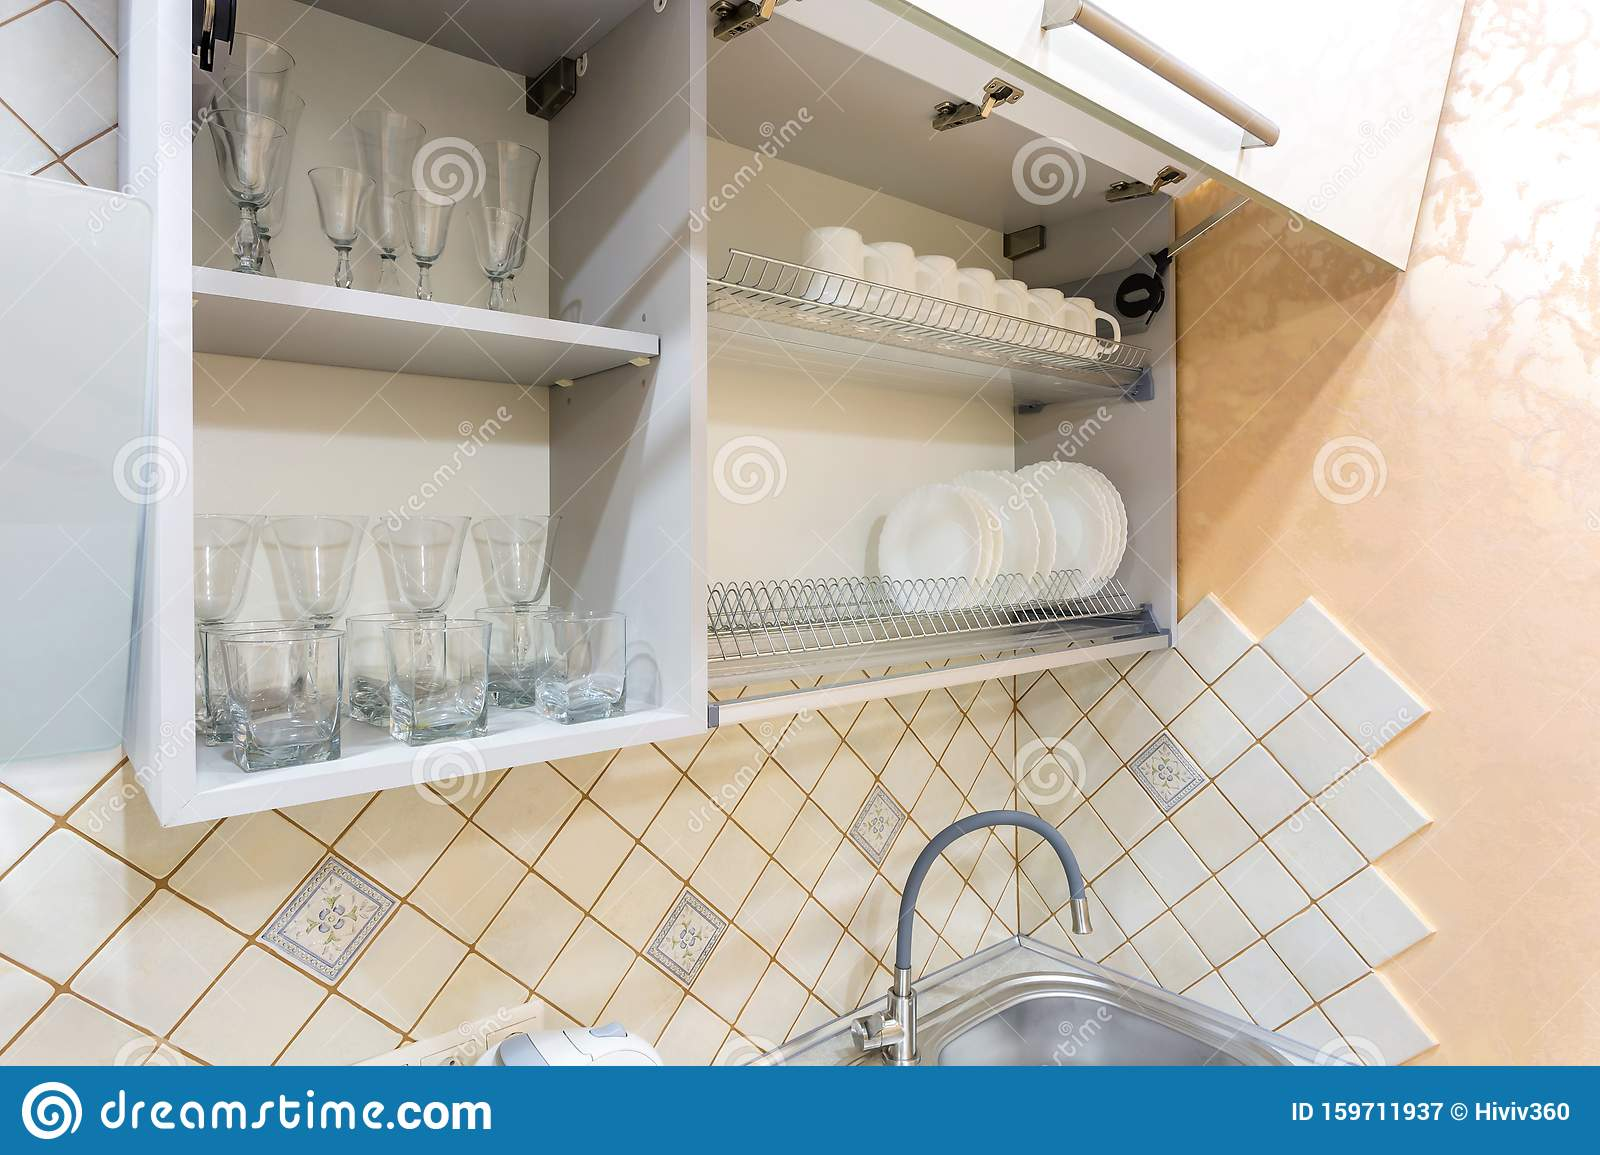 Set Of Plates, Cups And Wine Glasses On The Shelf In The ...